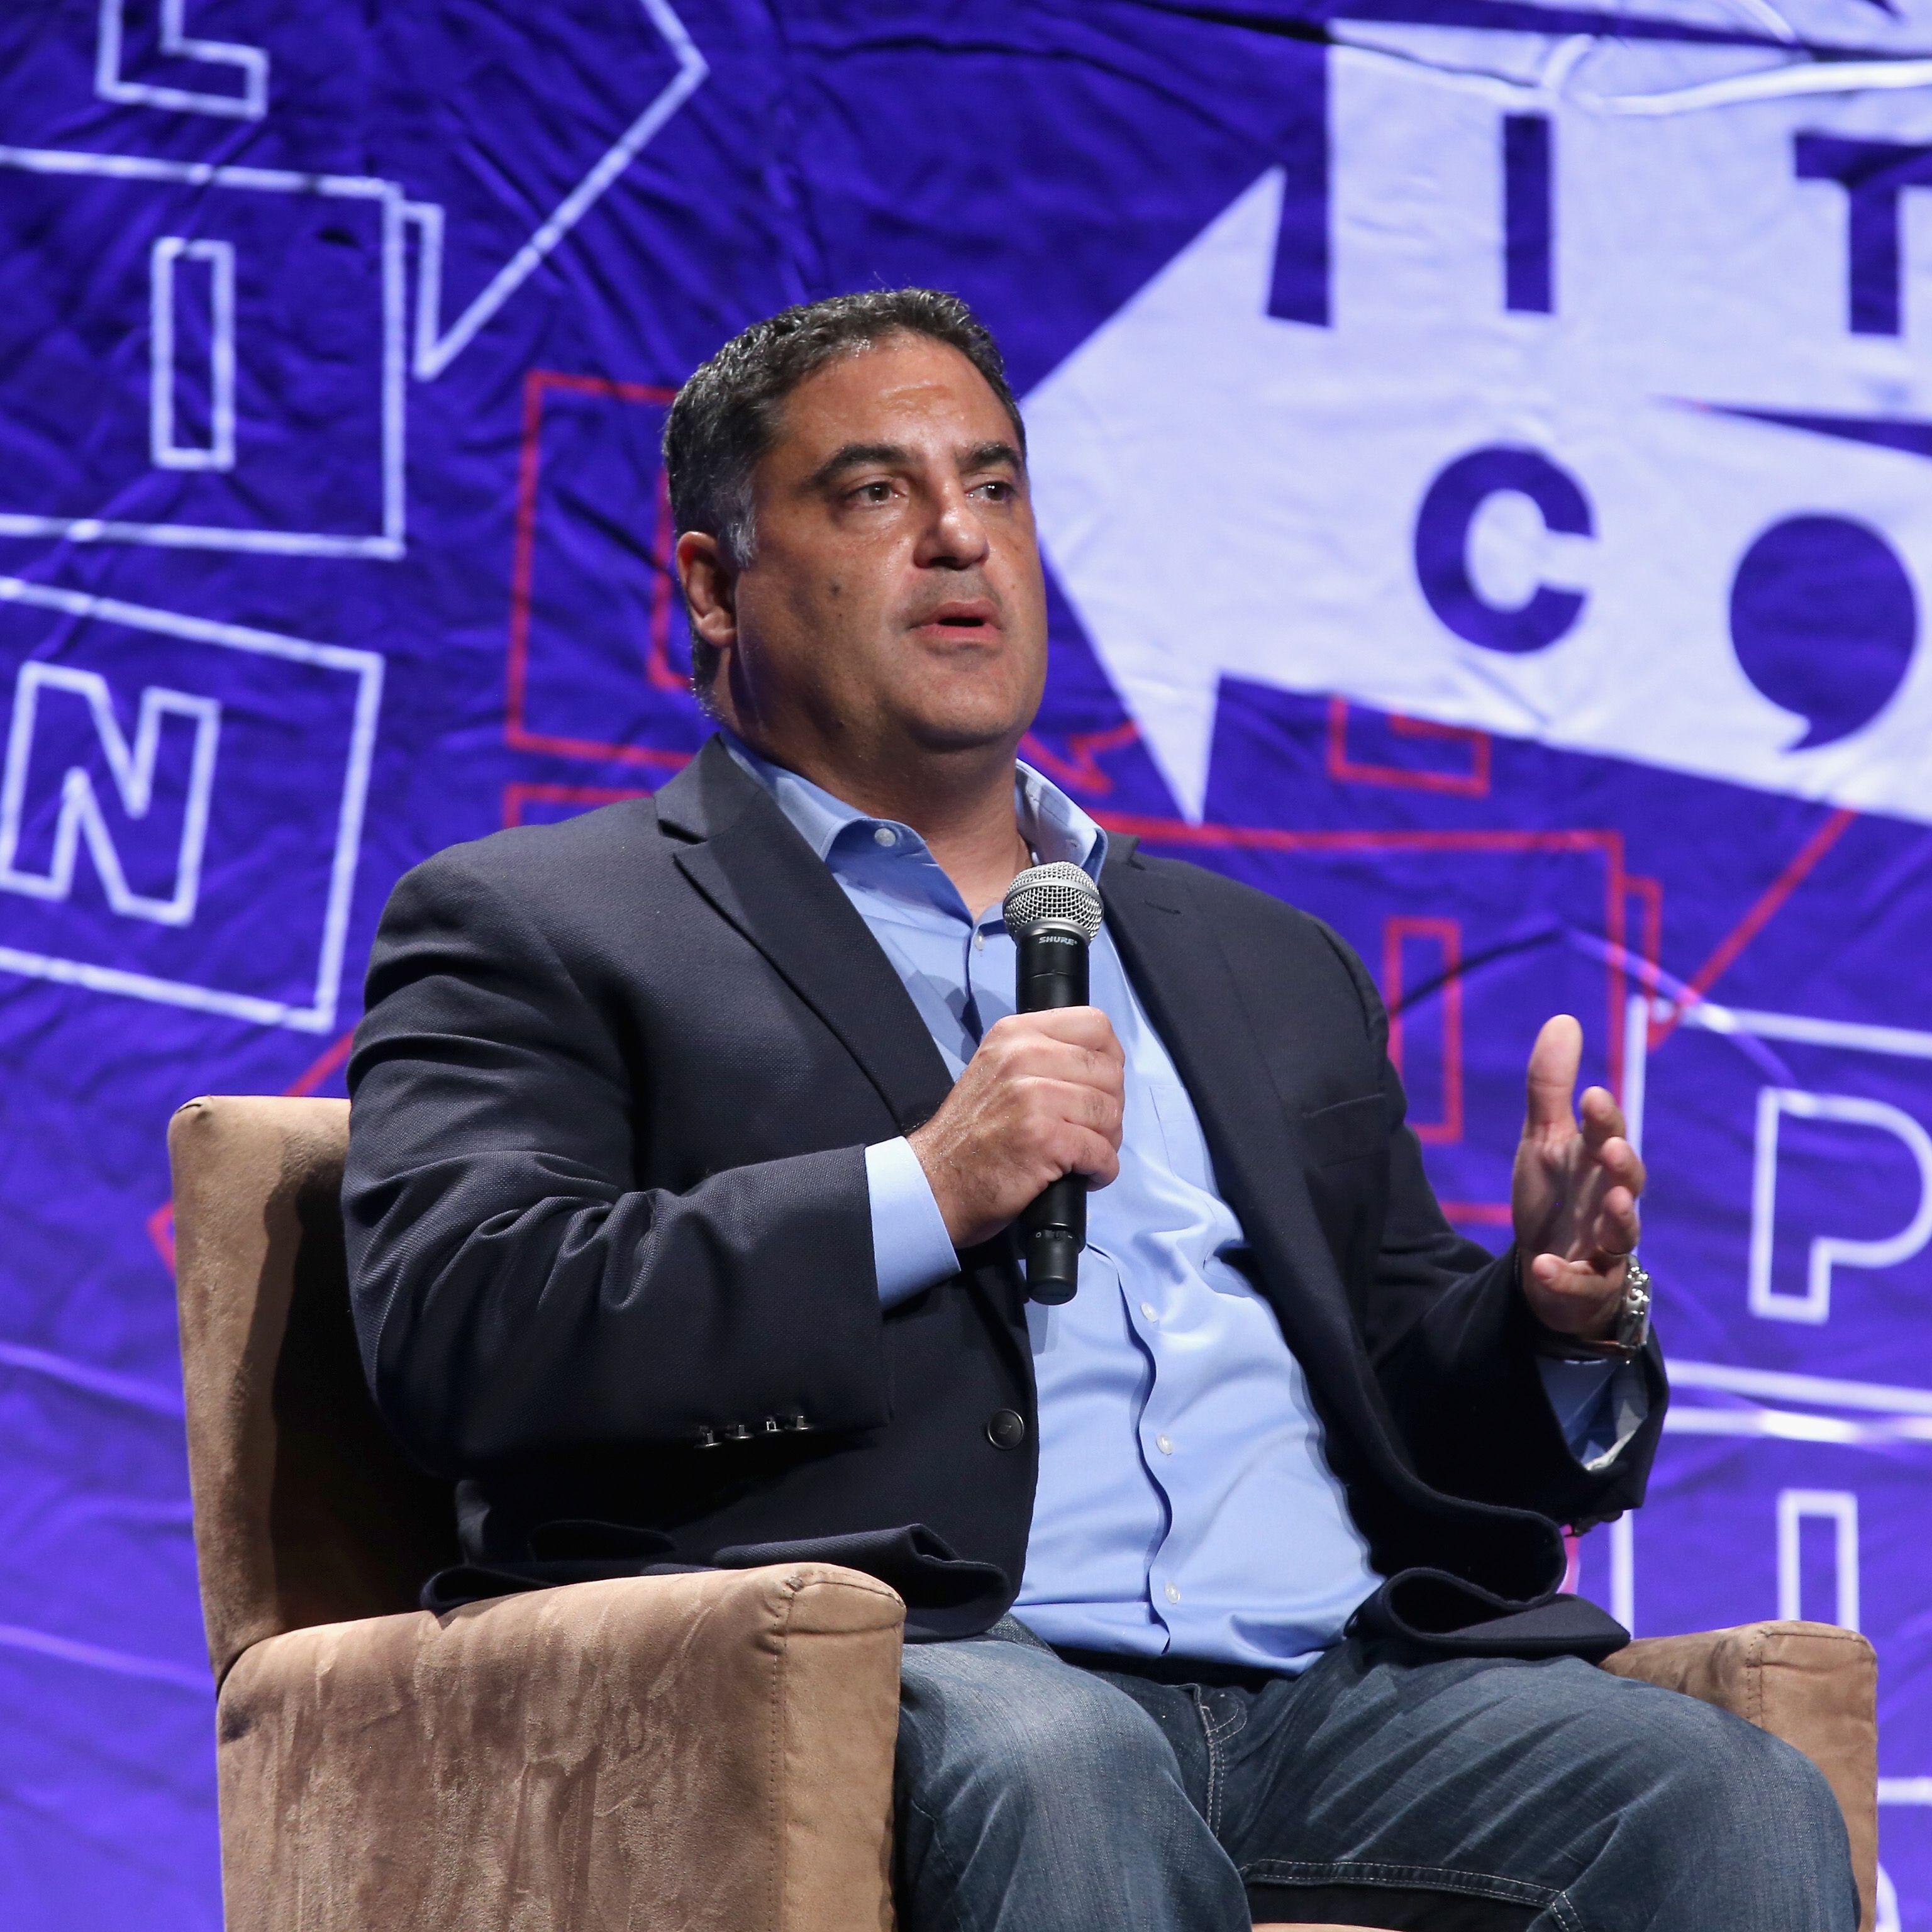 Young Turks' founder Cenk Uygur running to fill ex-Rep. Katie Hill's seat - Axios